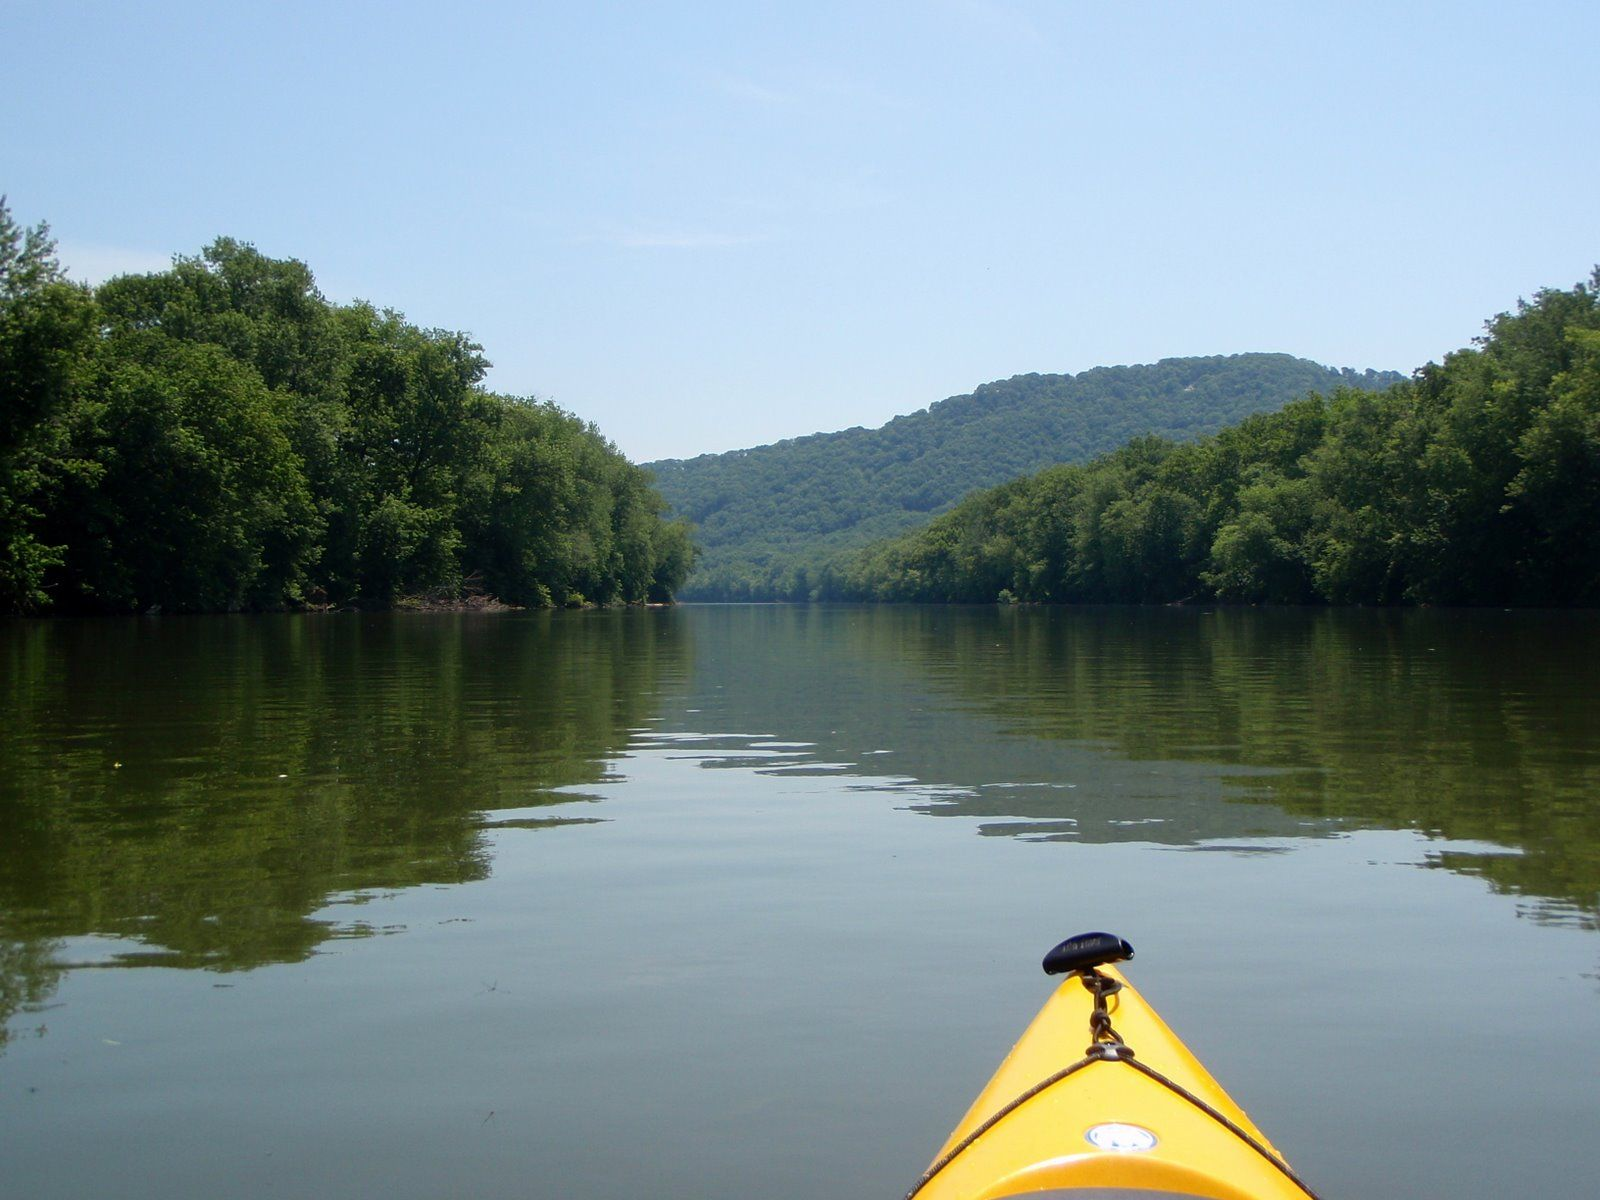 Shenandoah River, Virginia. Tubing on the 4th of July!